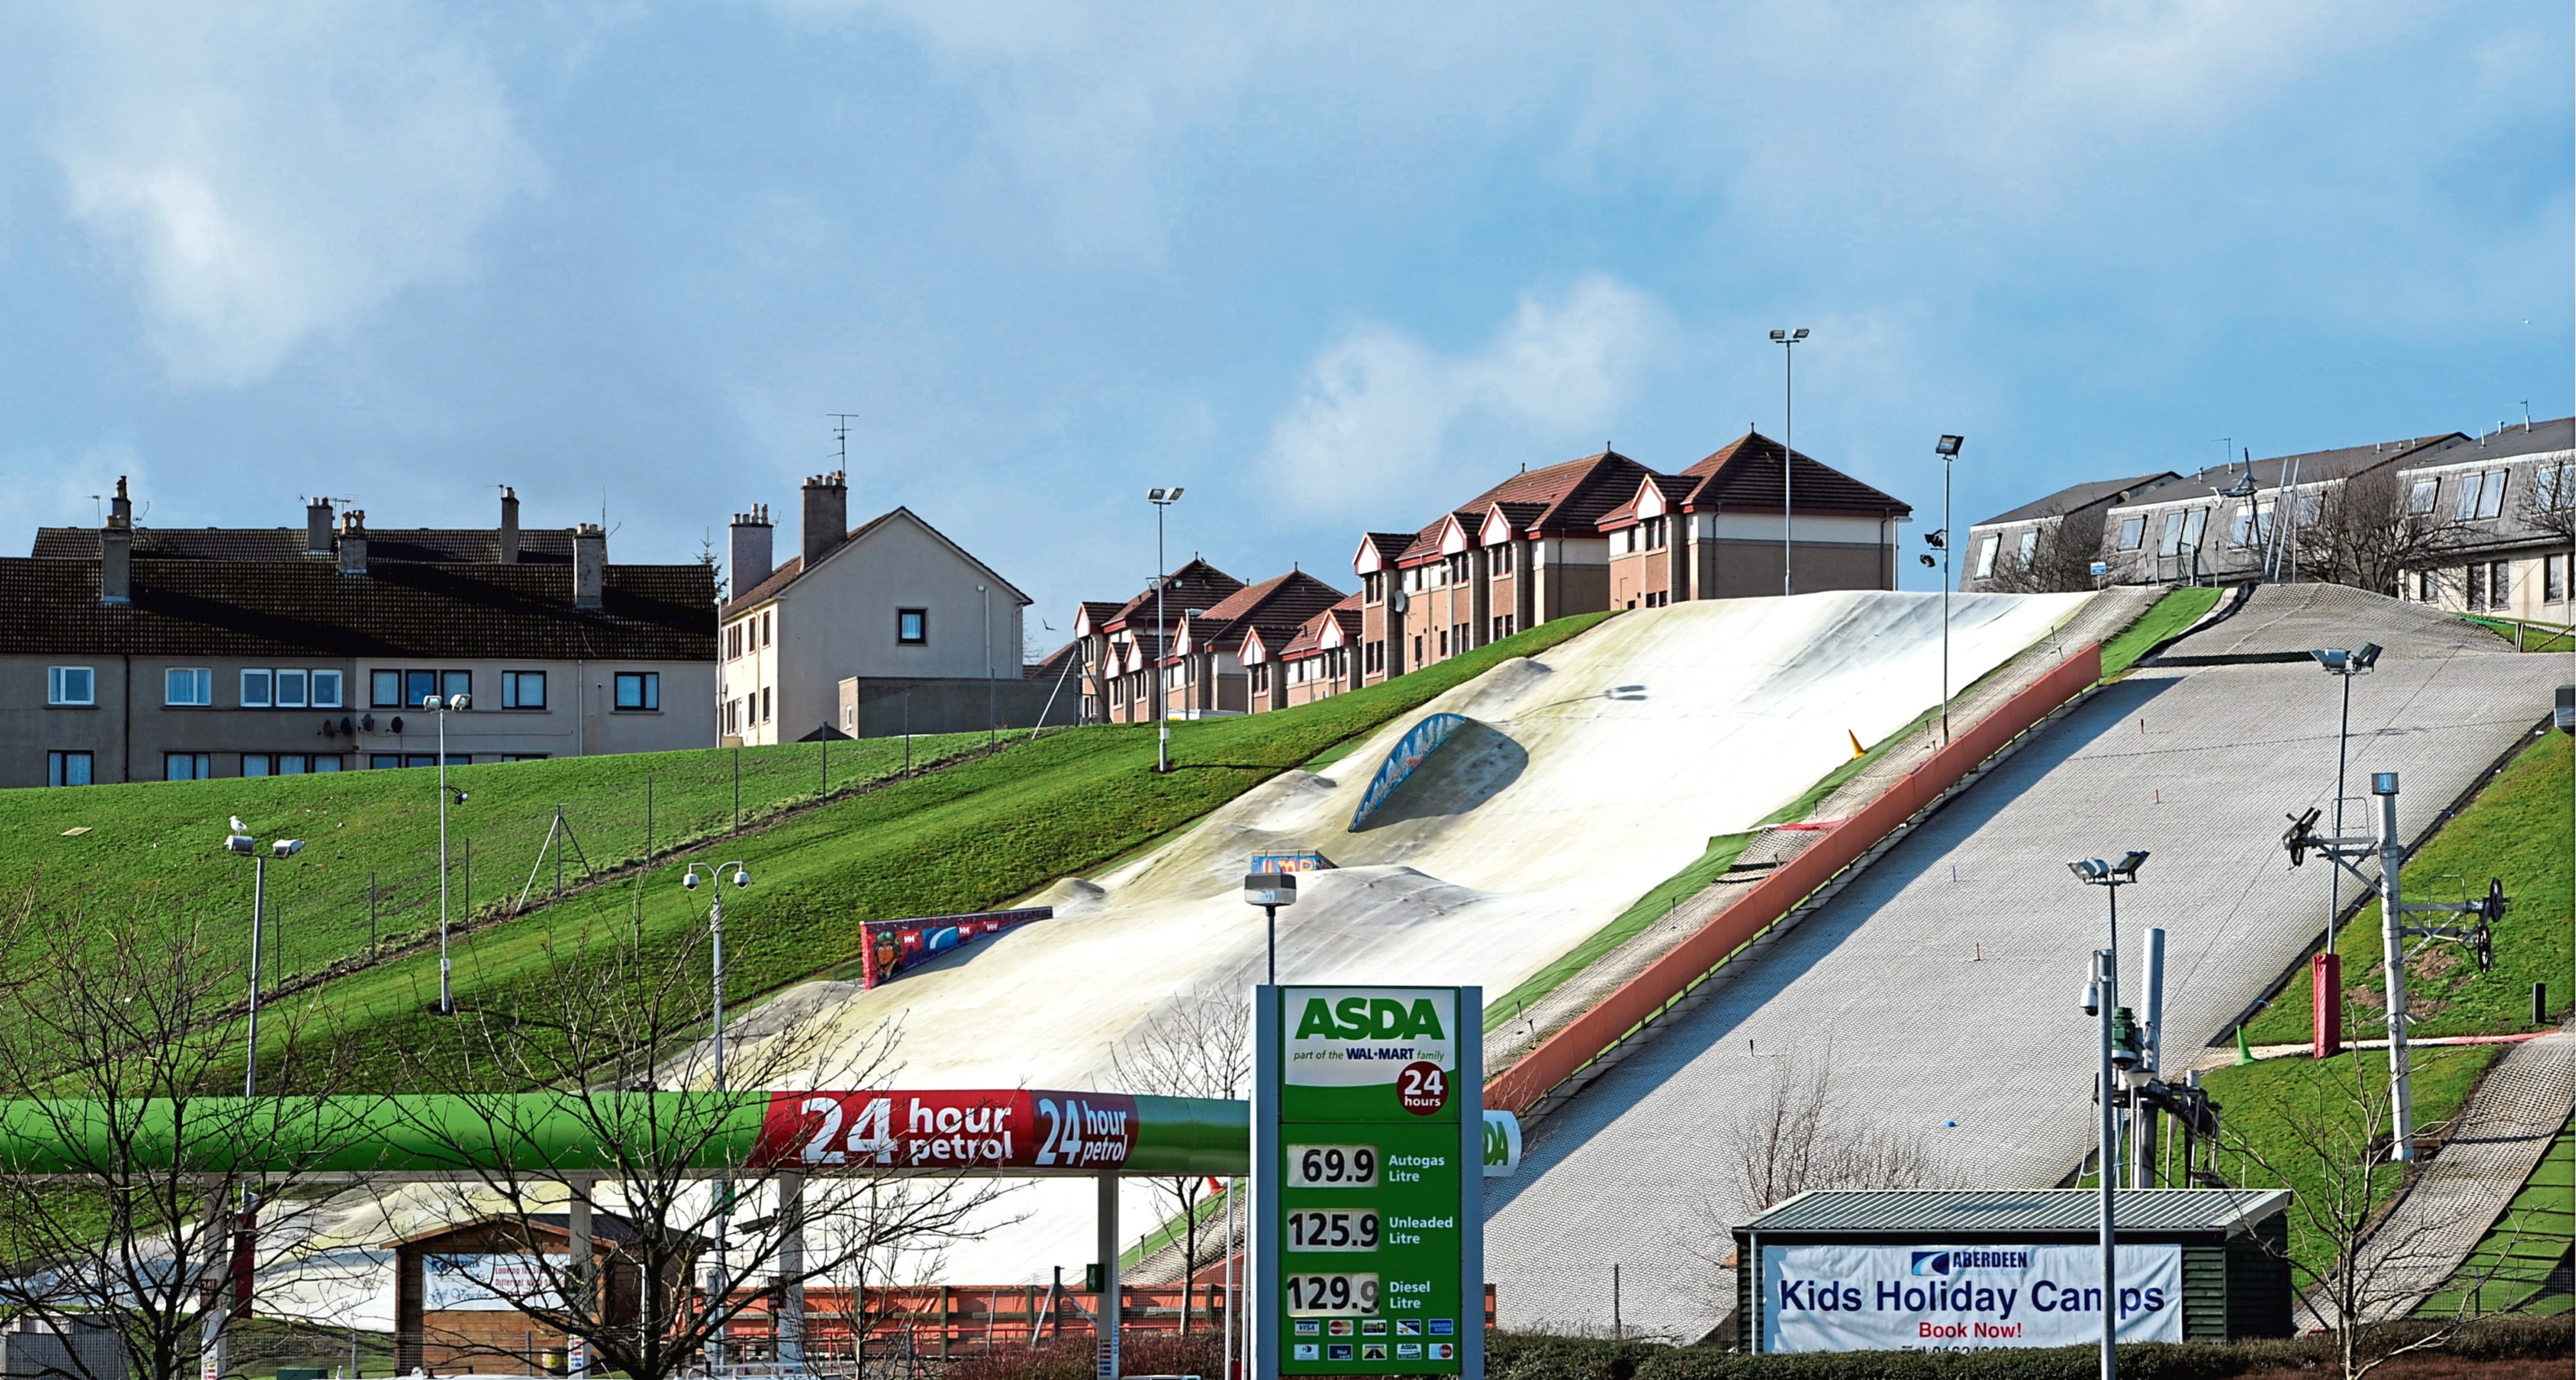 The Garthdee Community Council was behind the Aberdeen Snowsports Centre being built